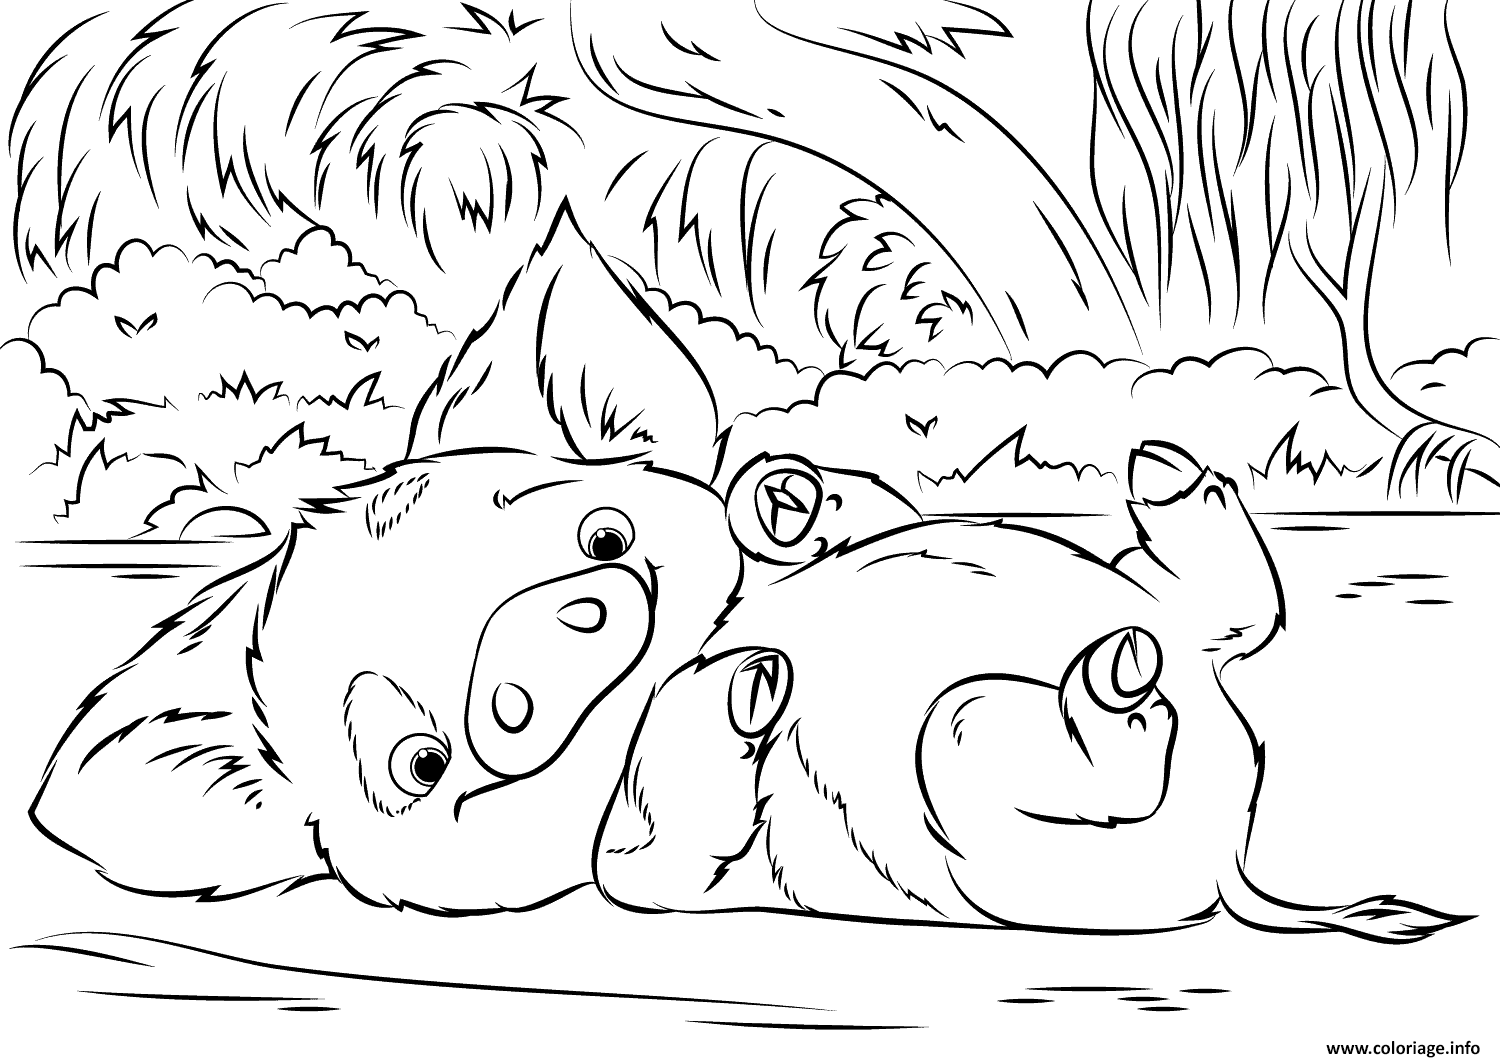 q56kfdw together with moana coloring pages mini 9 in addition 4e96yoc moreover desenhos para colorir disney moana maui further pua coloring as well Moana y Pua felices de Disney para dibujar y colorear also aftb moana printables 7 together with moana lineart   pua and hei hei by notxme daquhxe besides happy peppa pig and friends coloring pages in addition a2113b823f710442b8278c18feca05d5 M likewise la principessa vaiana con il maialino vietnamita pua. on moana pig pua coloring pages